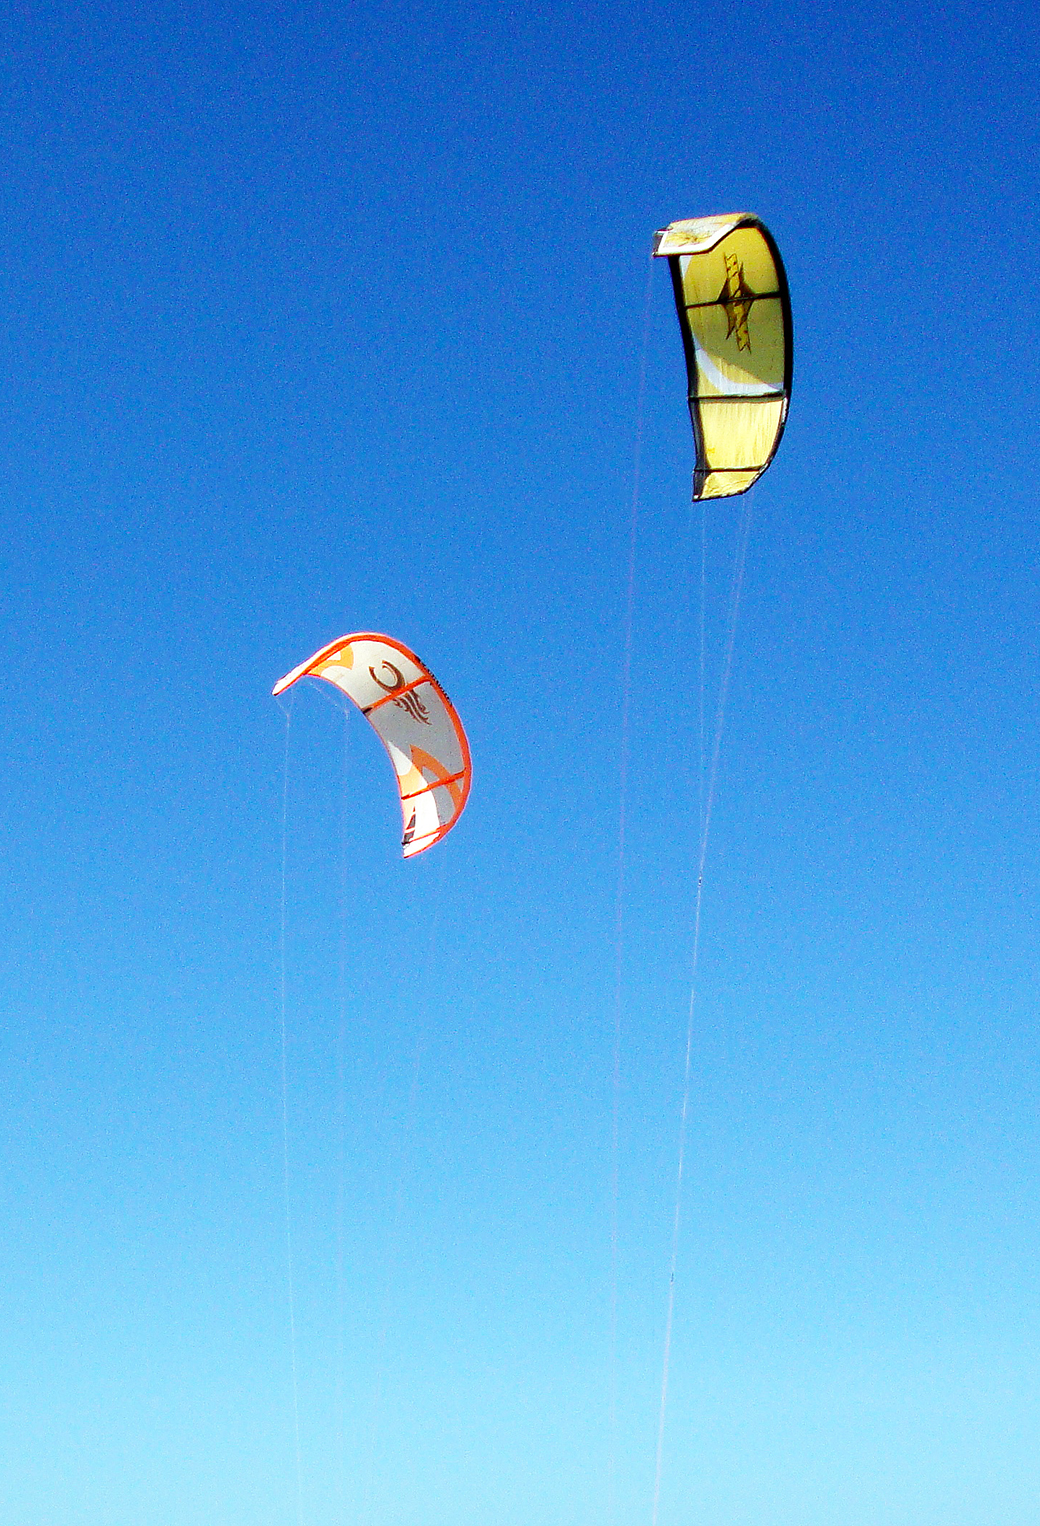 Kite Surf flying 3Wallpapers iPhone Parallax Les 3 Wallpapers iPhone 1040x1526